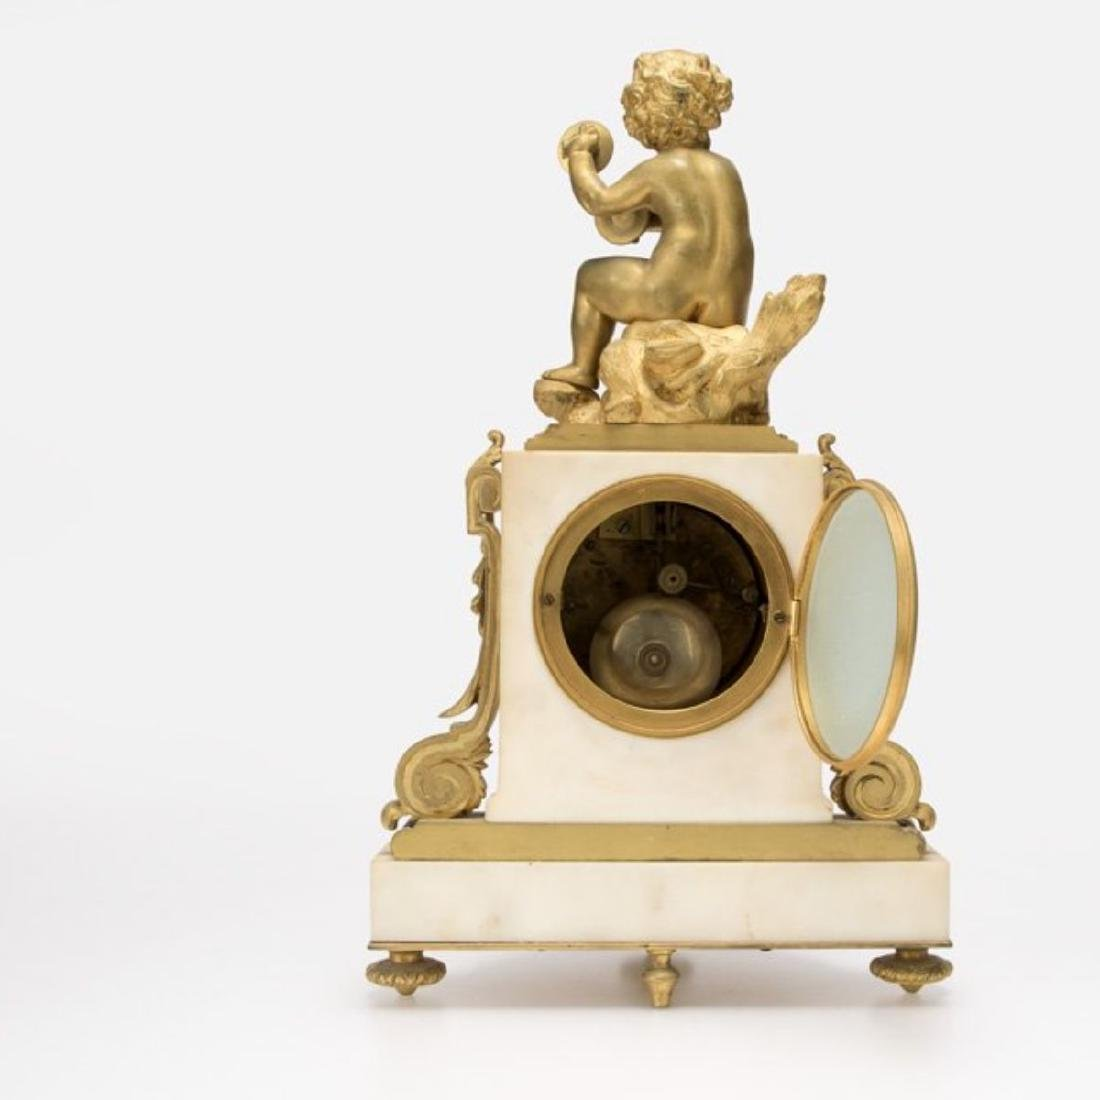 LOUIS XVI STYLE GILT BRONZE MOUNTED MANTEL CLOCK - 3